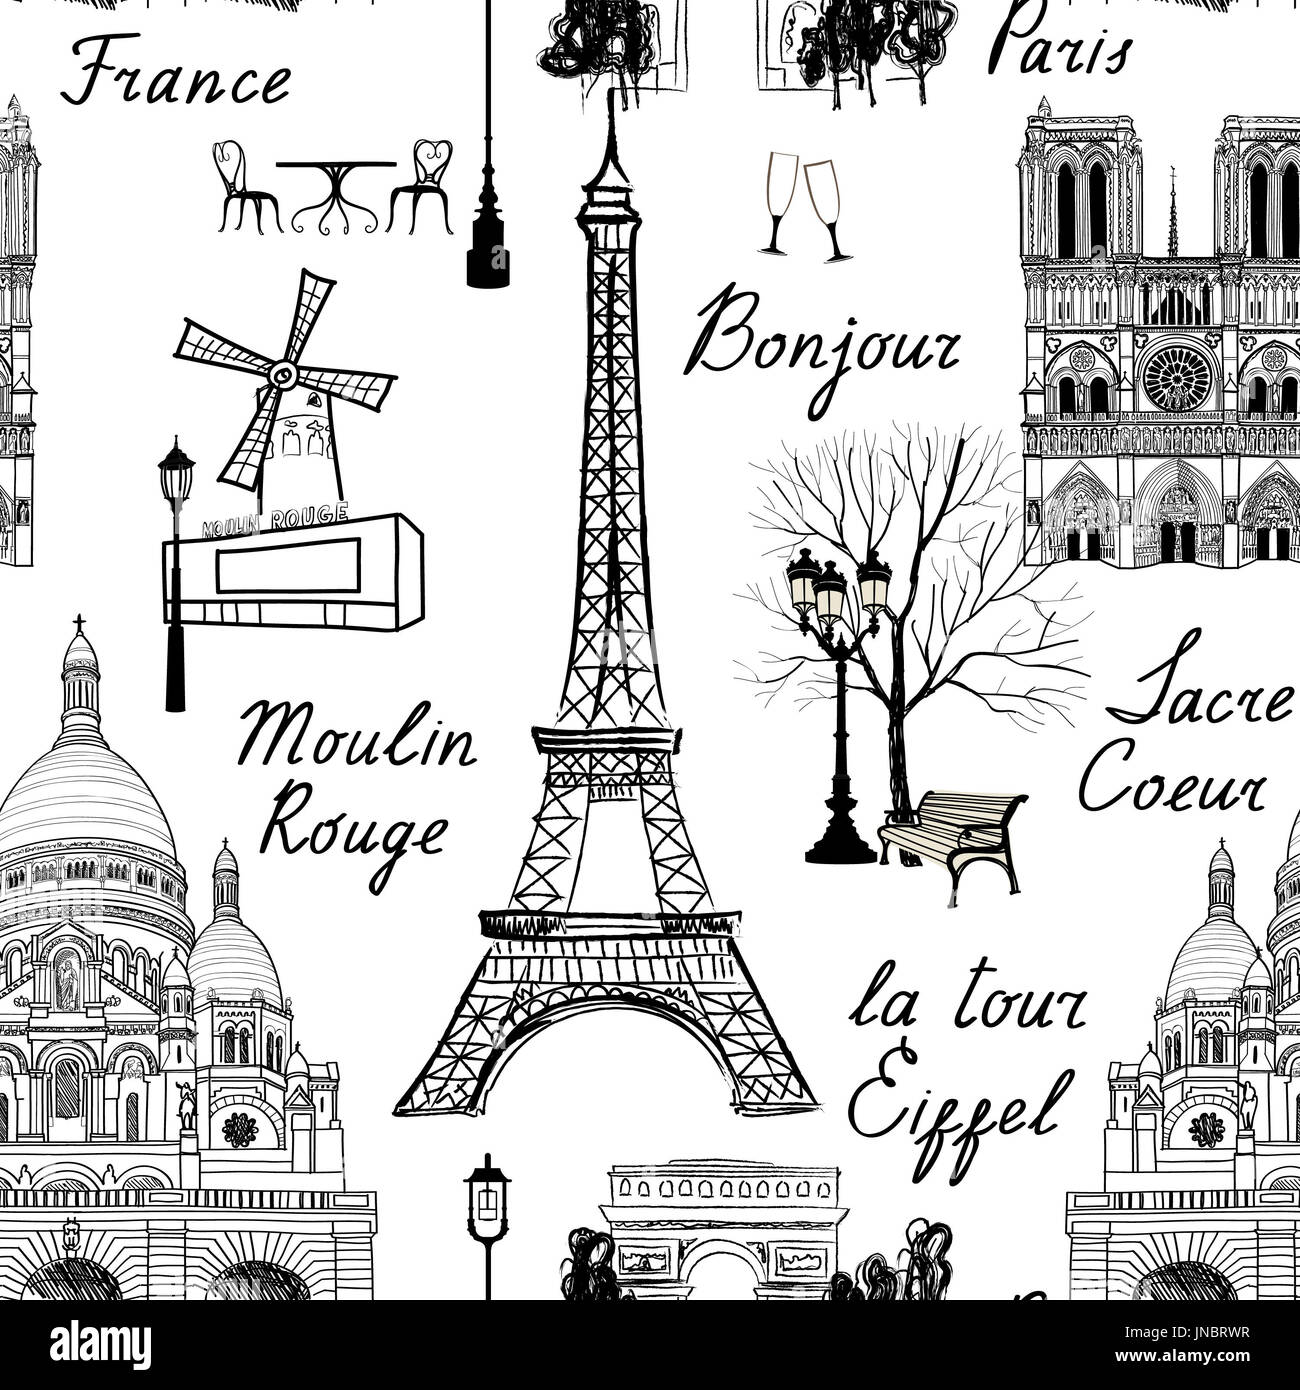 Travel Paris seamless pattern. Vacation in Europe wallpaper. Travel to visit famous places of France background. Landmark tiled grunge pattern. - Stock Image